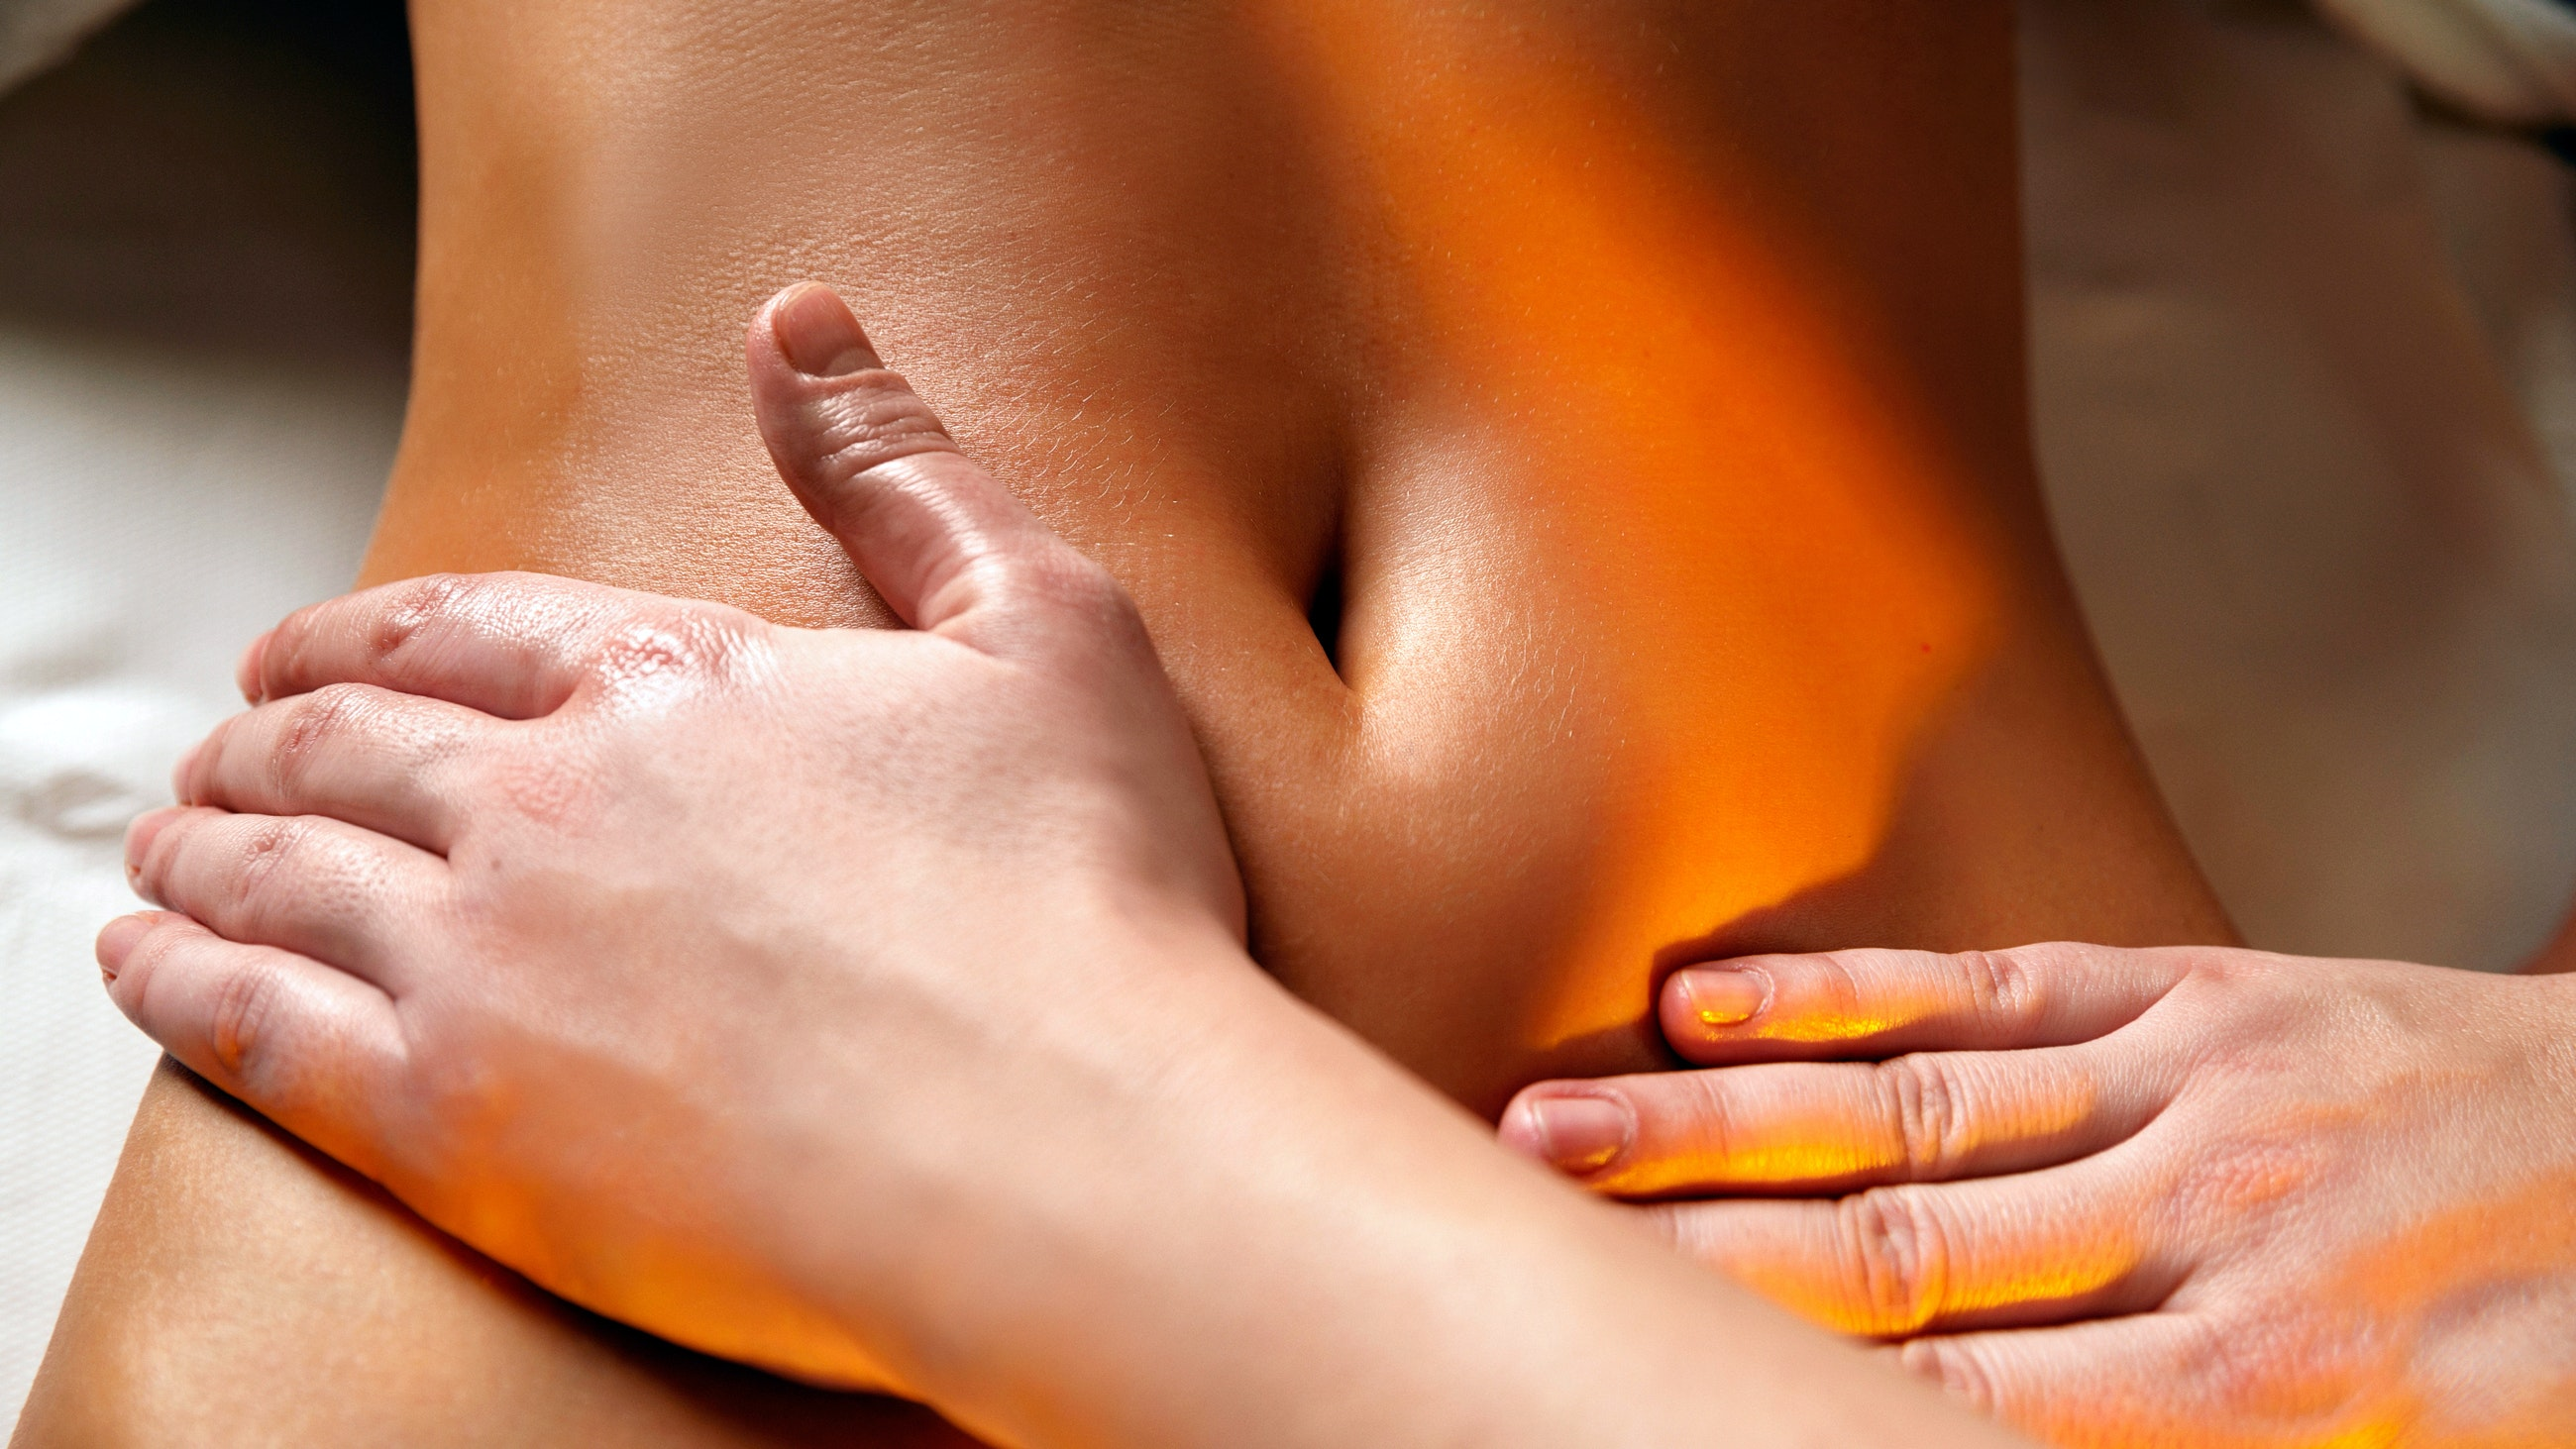 woman getting lymphatic drainage massage on stomach